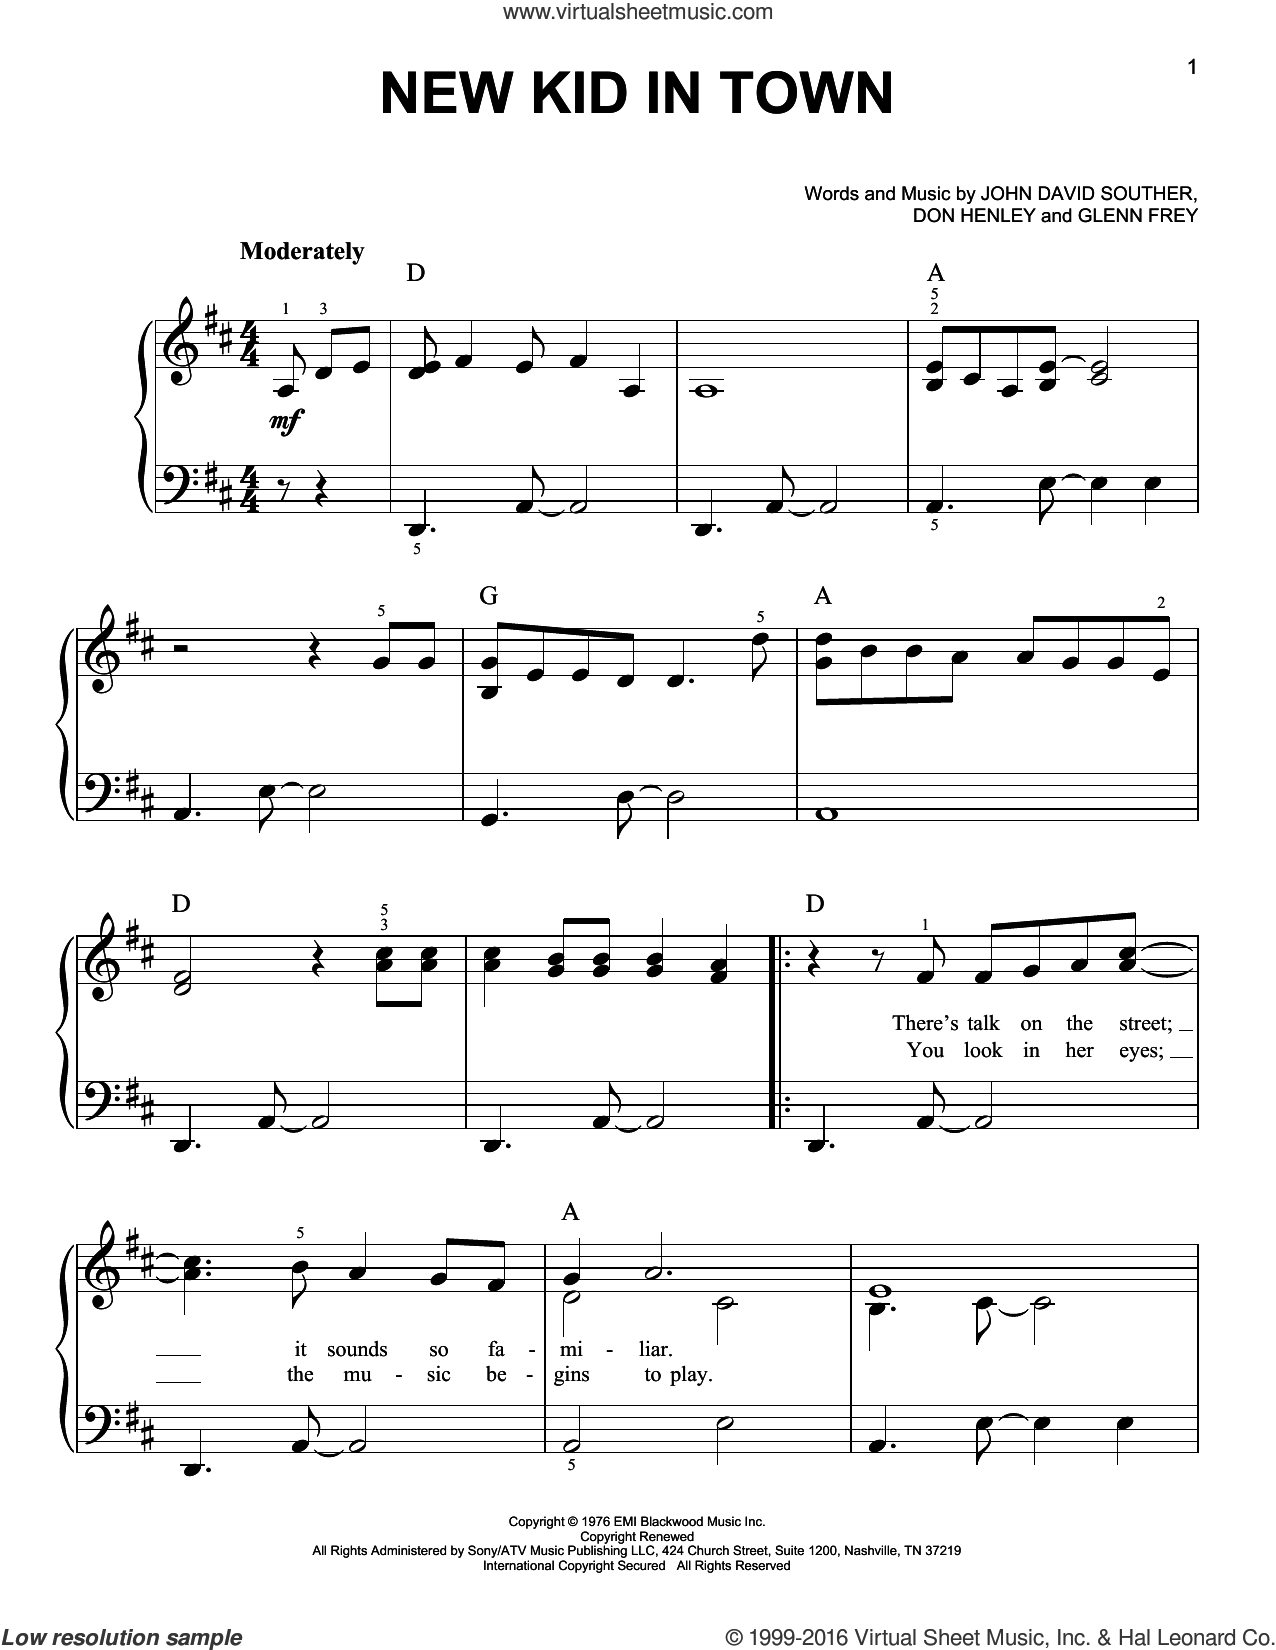 New Kid In Town sheet music for piano solo by John David Souther, Eagles, Don Henley and Glenn Frey. Score Image Preview.